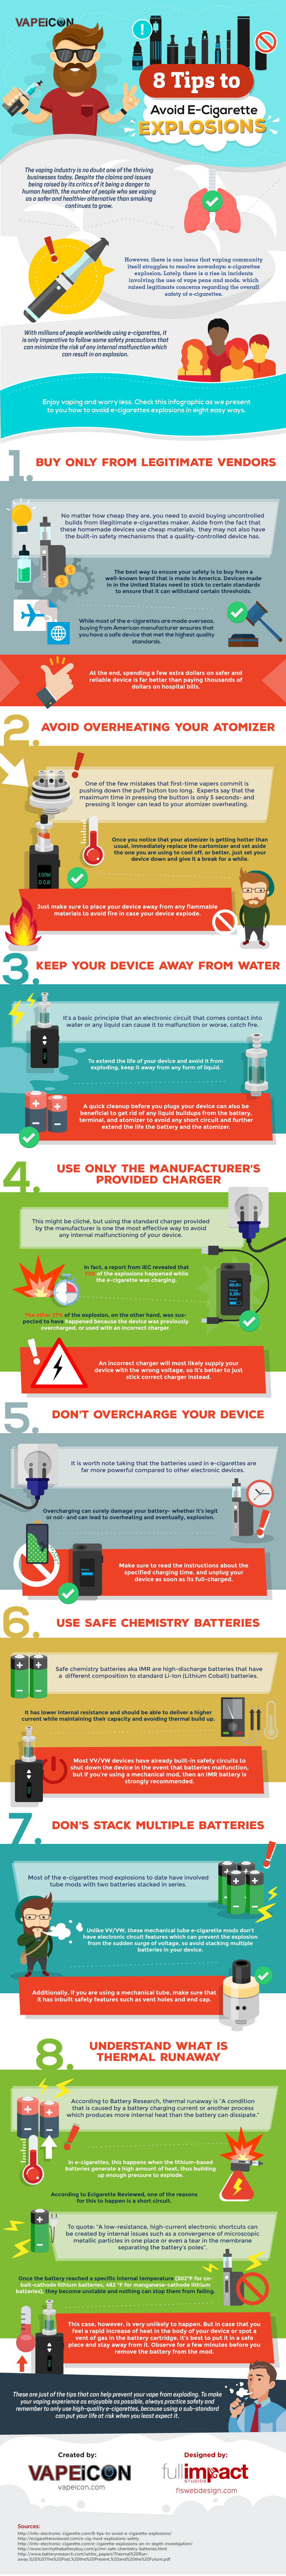 How To Avoid E-Cigarette Explosions - Infographic